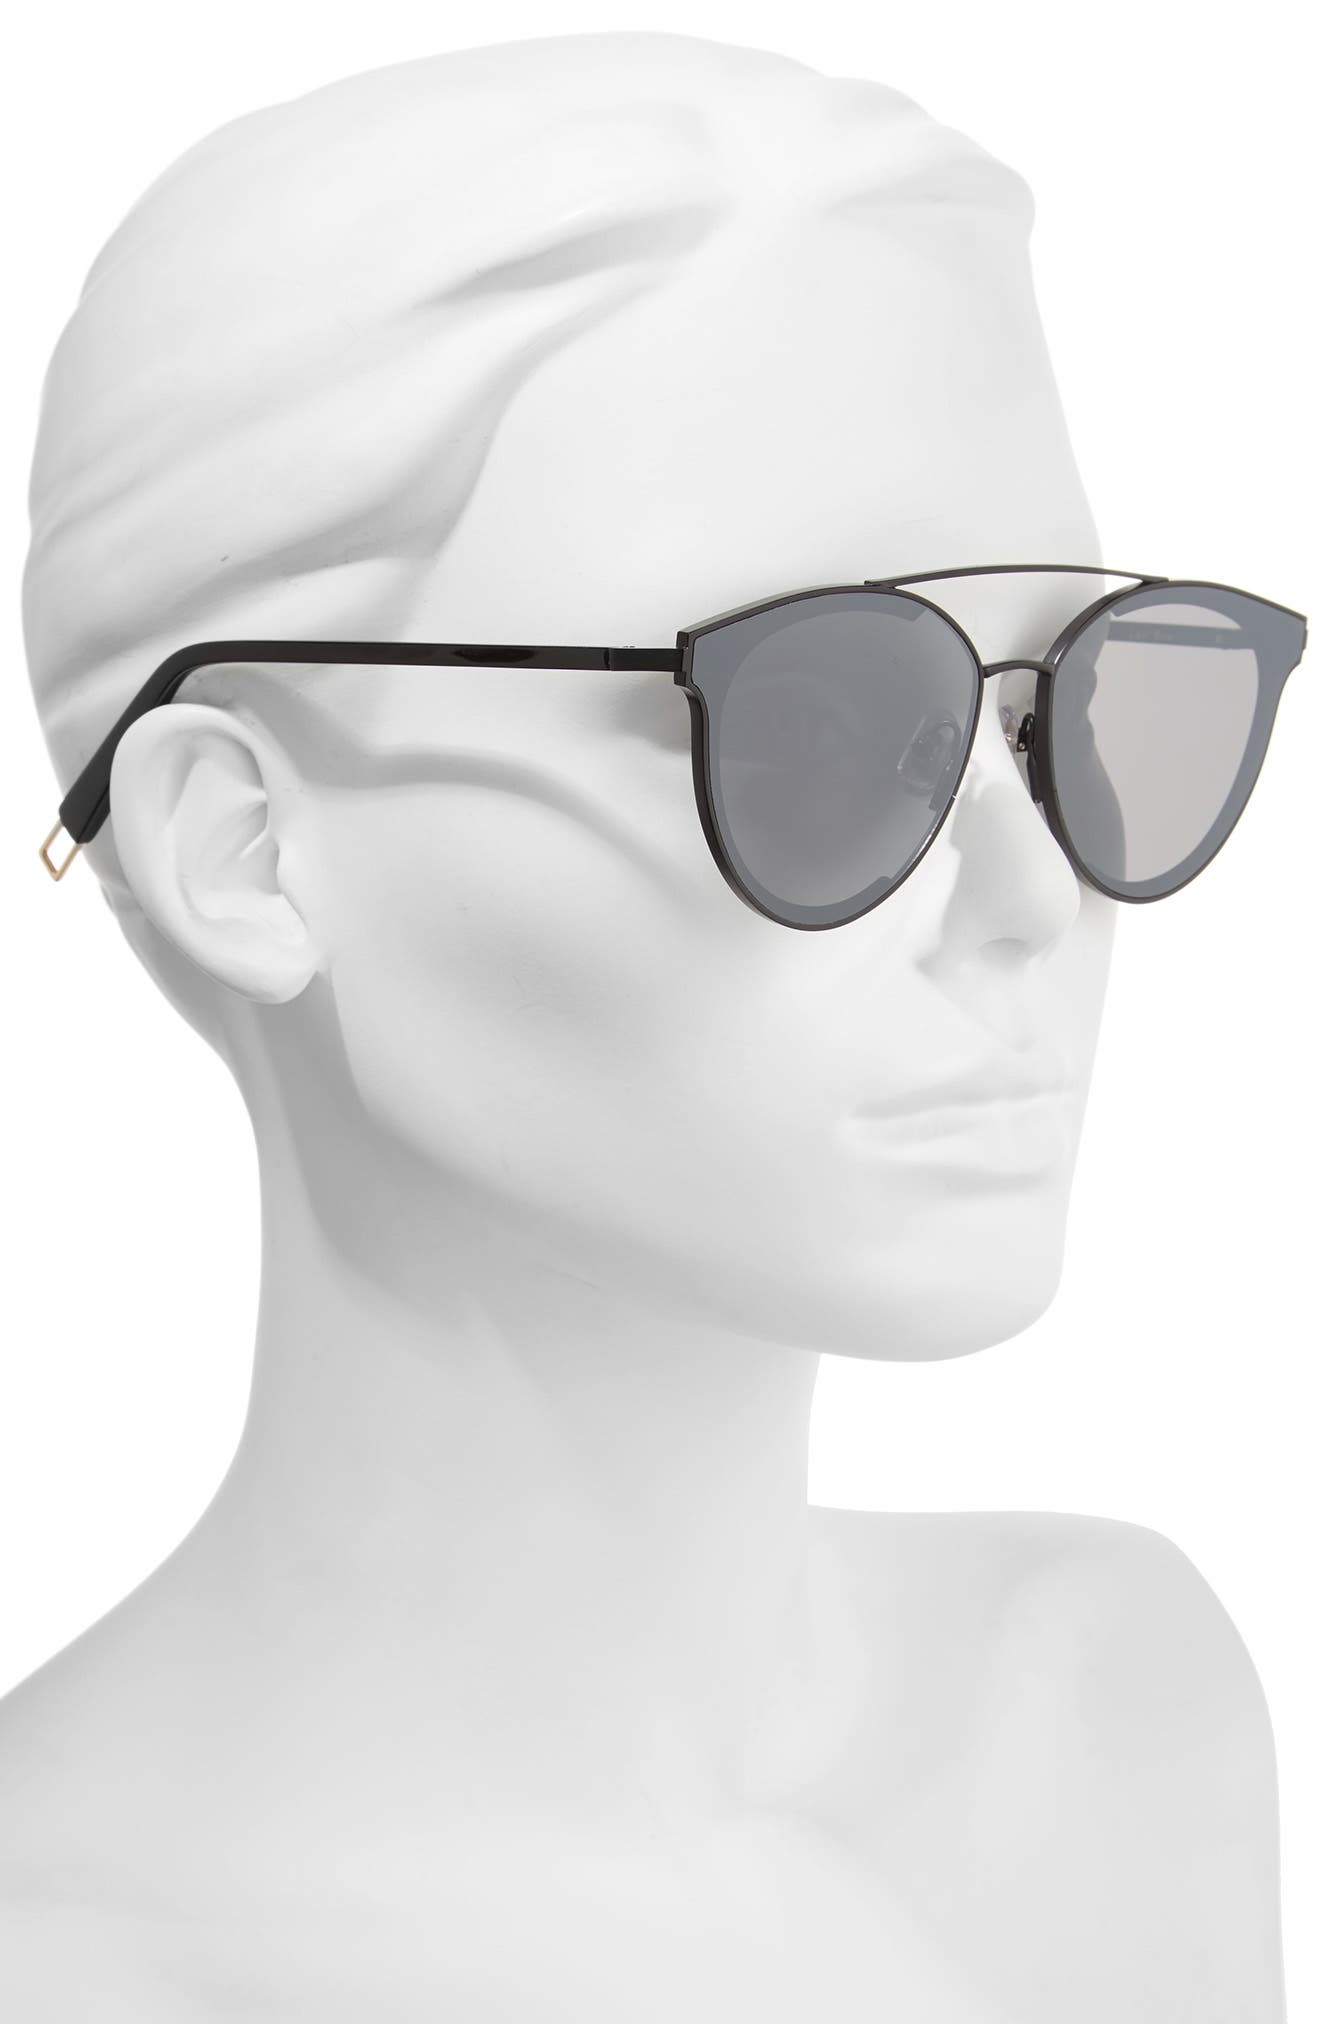 Last Bow 63mm Oversized Sunglasses,                             Alternate thumbnail 2, color,                             001